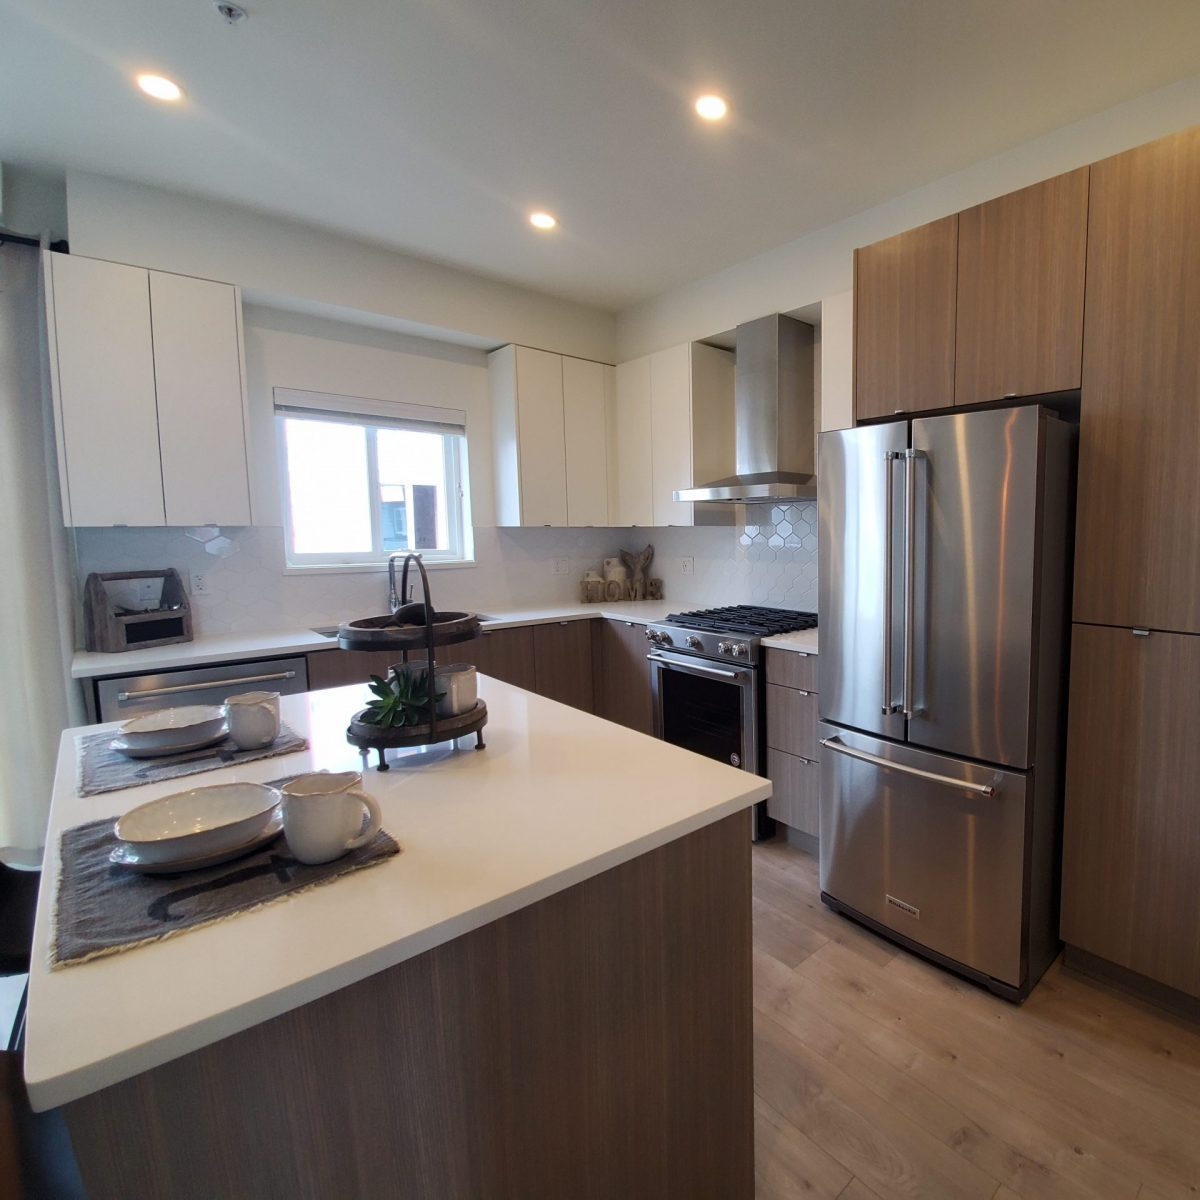 Luxia kitchen cabinets